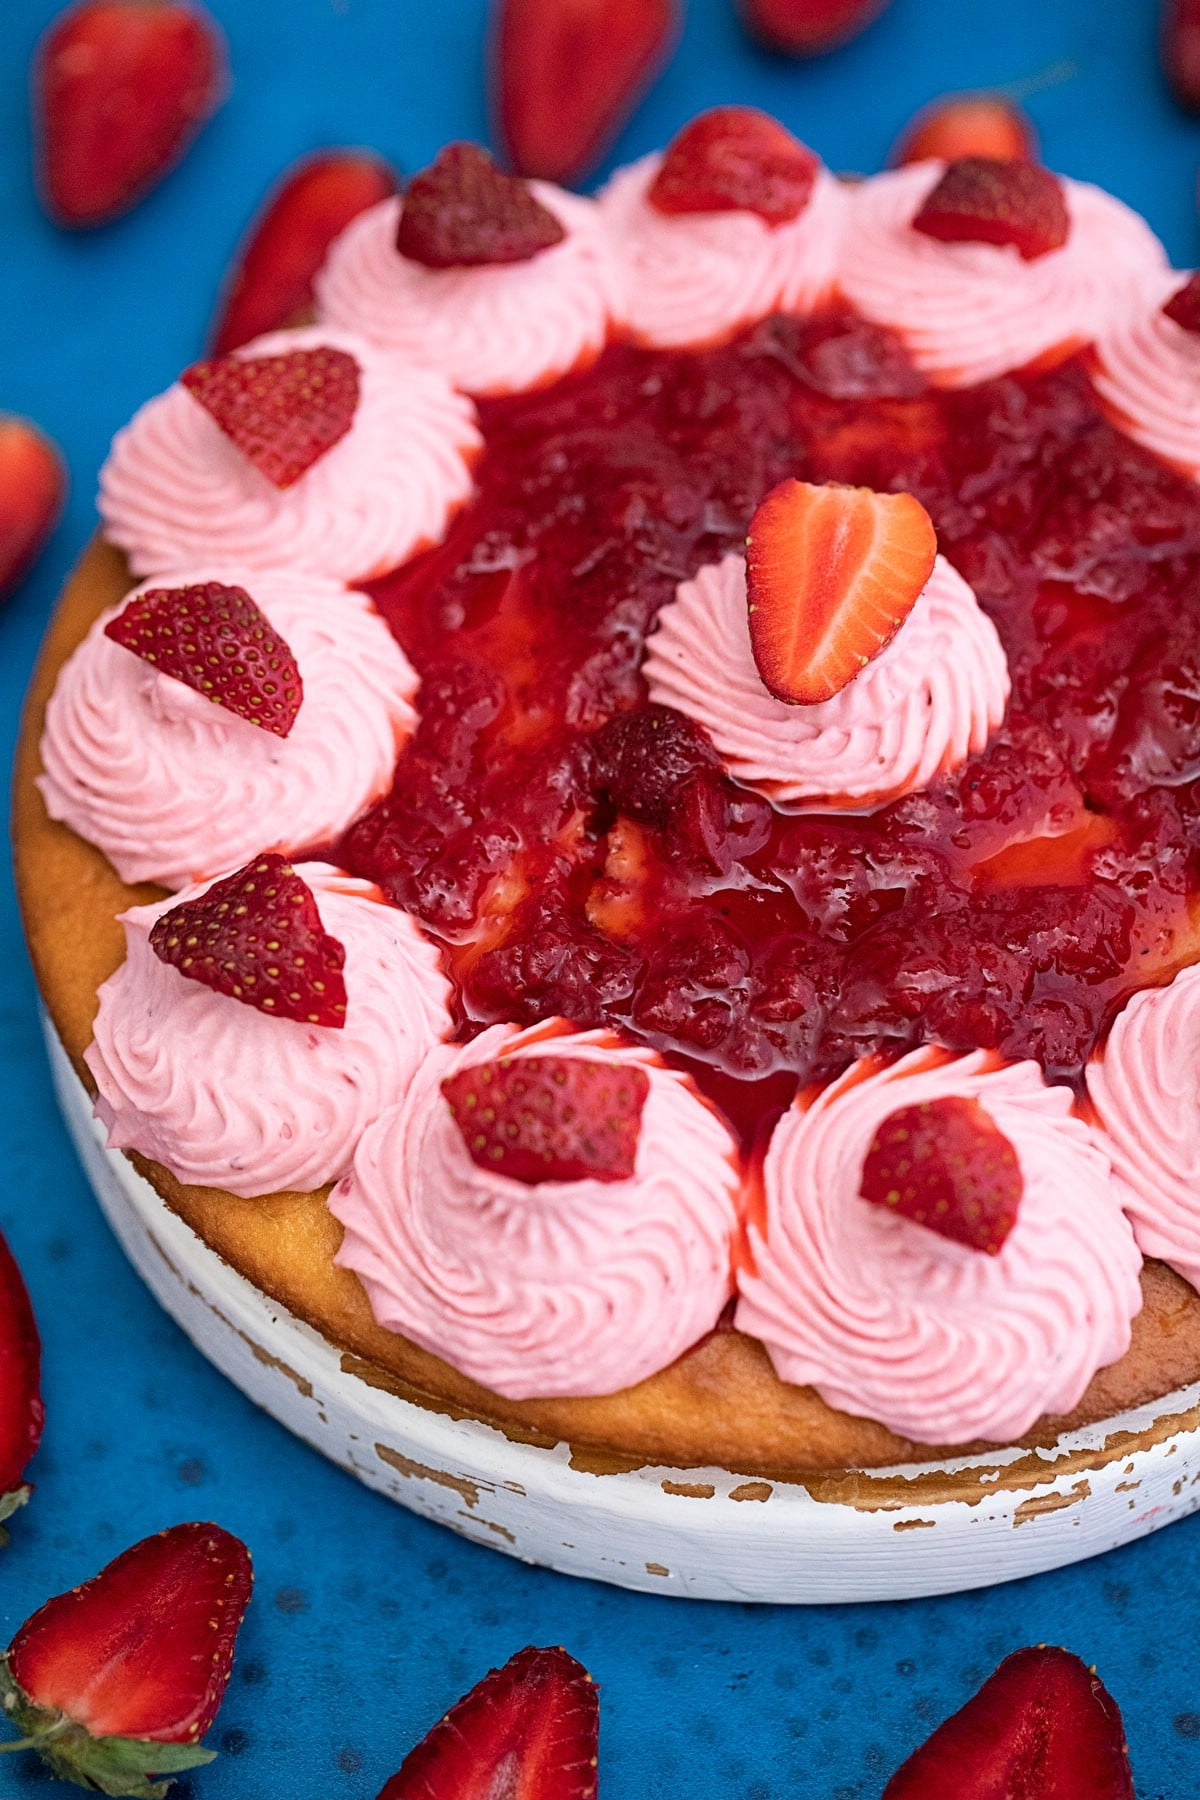 Decorated strawberry cake